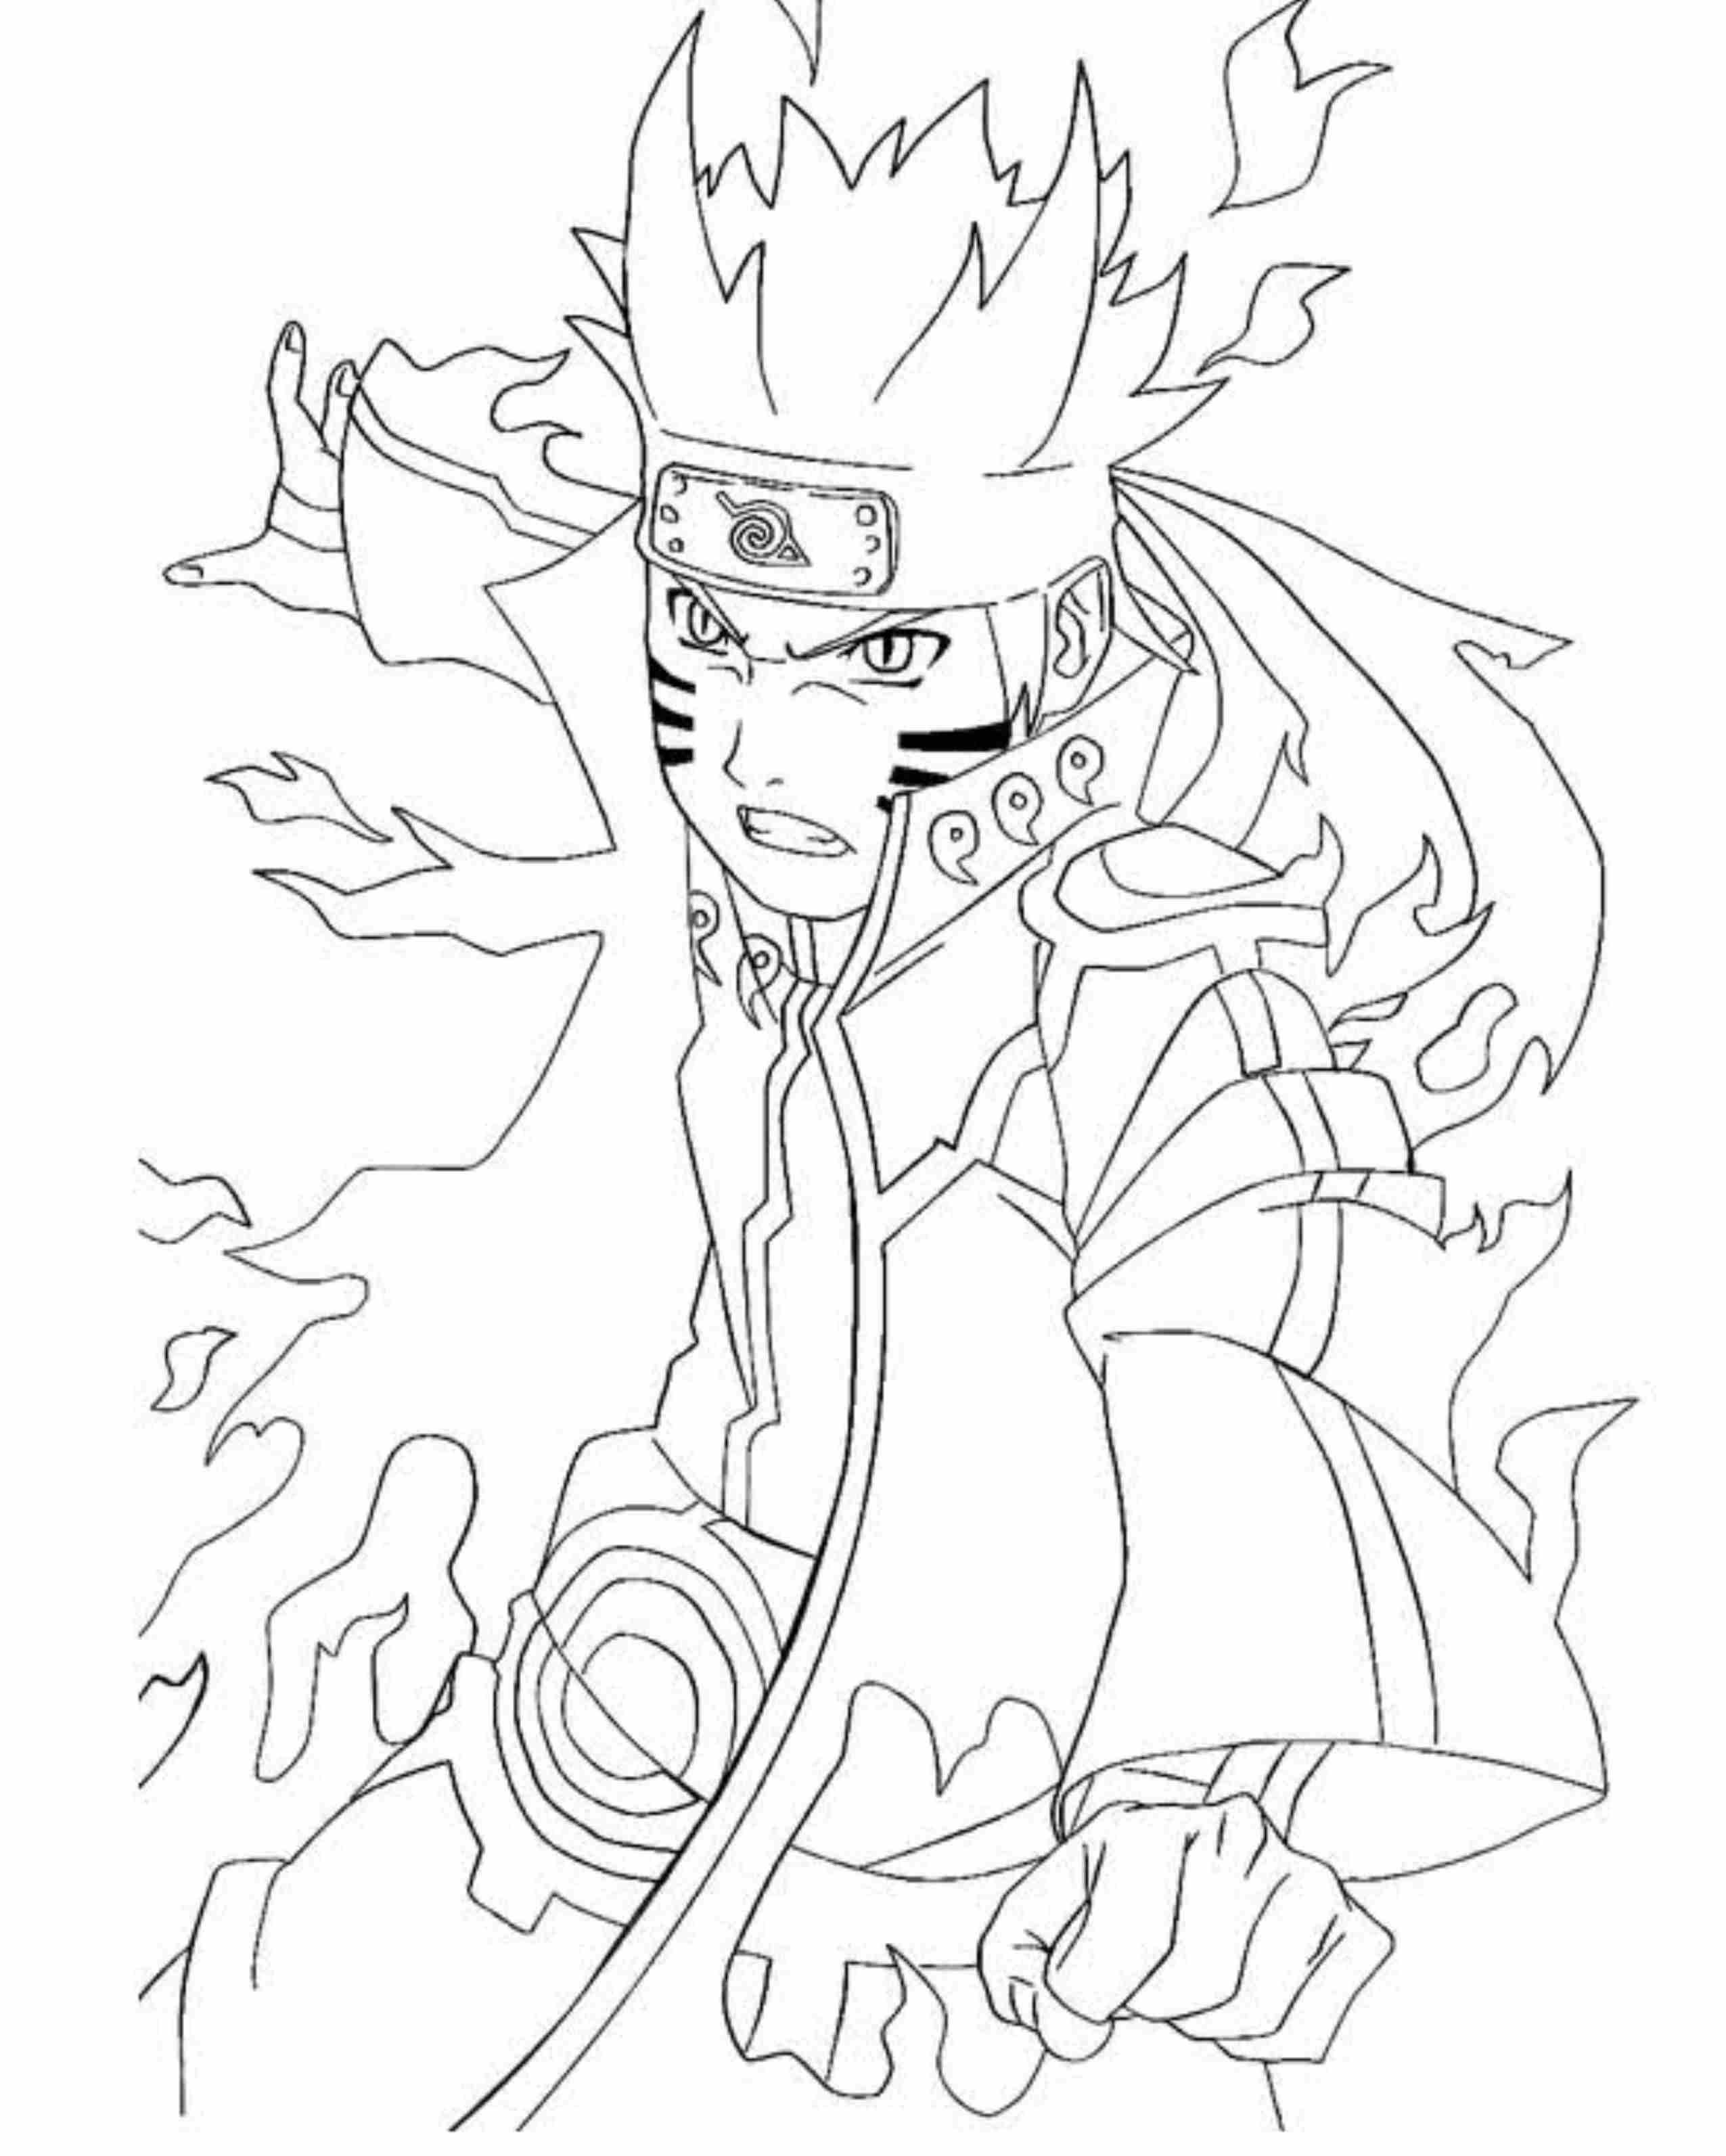 Coloring-Pages-Of-Naruto-Shippuden-Characters | Coloriage serapportantà Coloriage De Naruto Shippuden A Imprimer